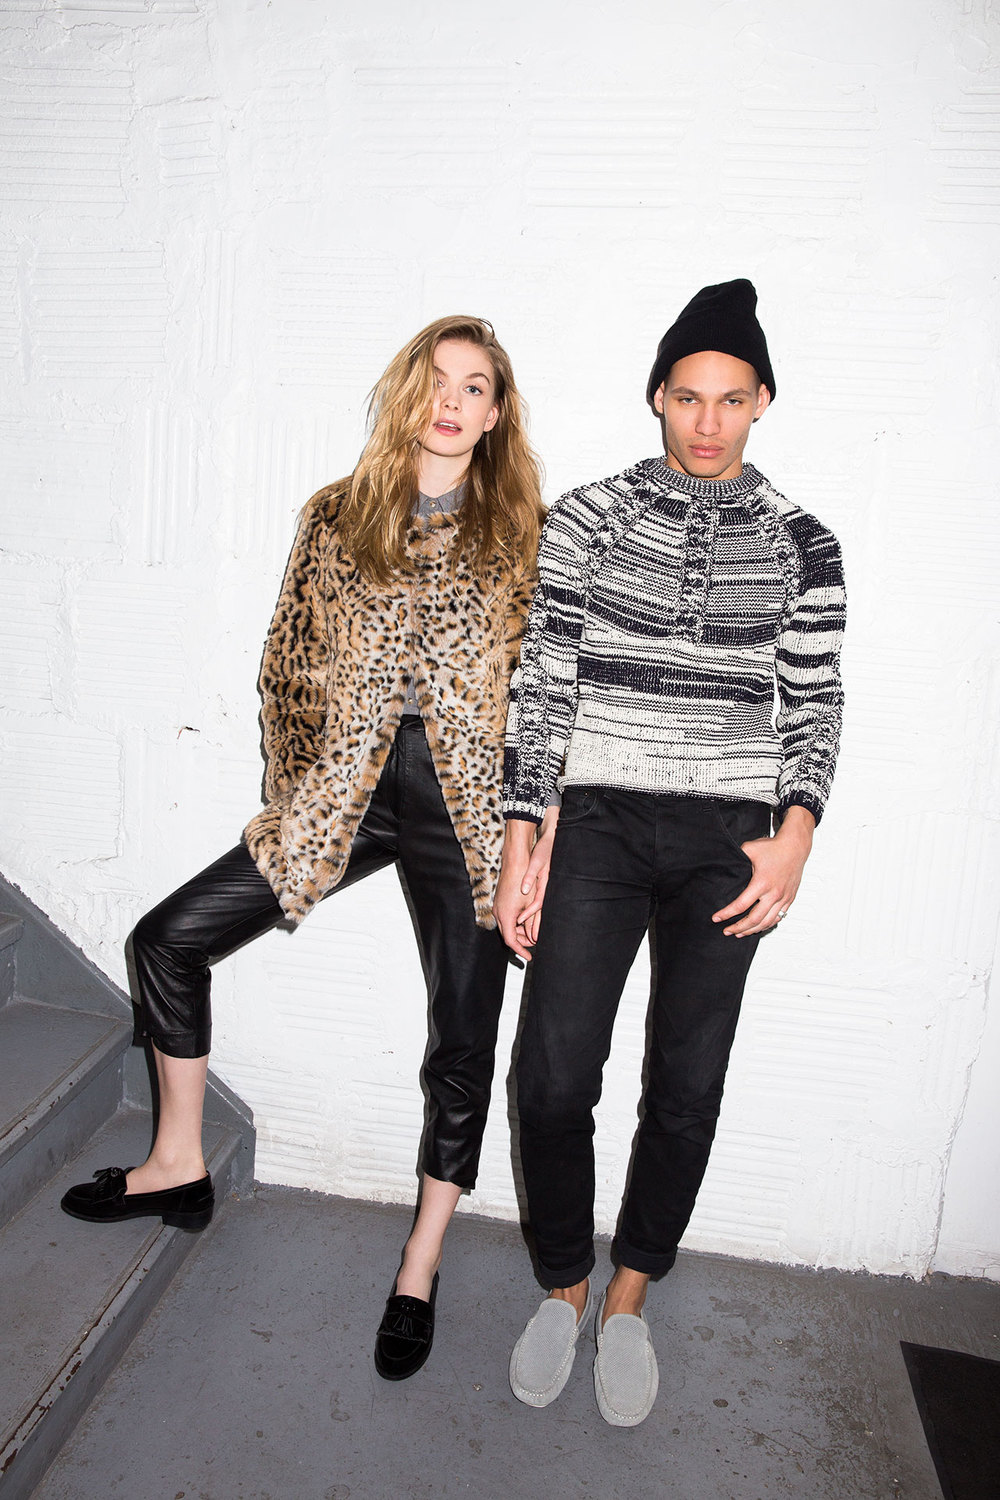 steve-madden-fw15-campaign-styled-by-andrea-messier-cuomo-13.jpg